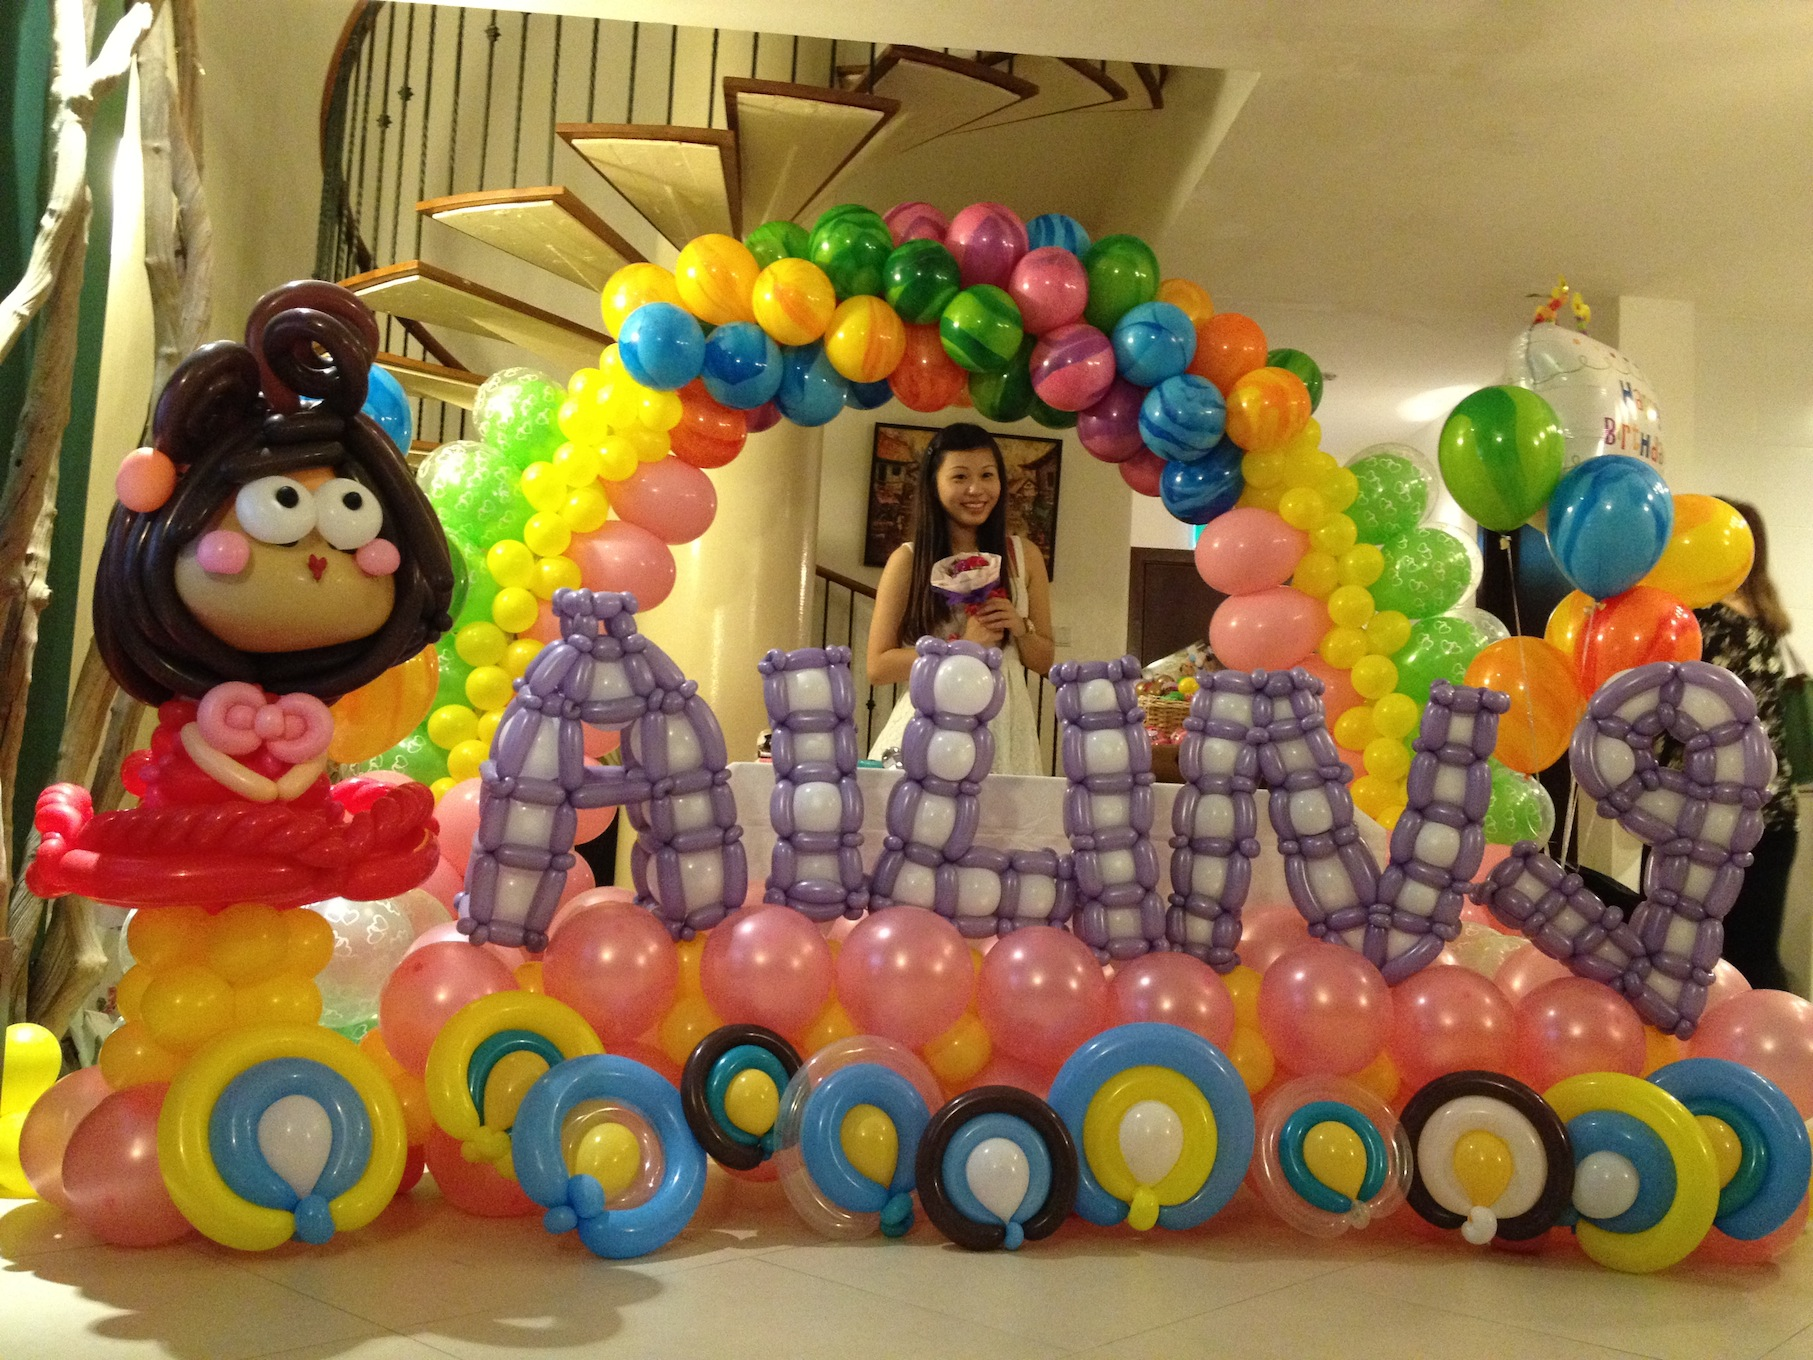 Birthday Party Balloon Decorations | THAT BalloonsTHAT Balloons